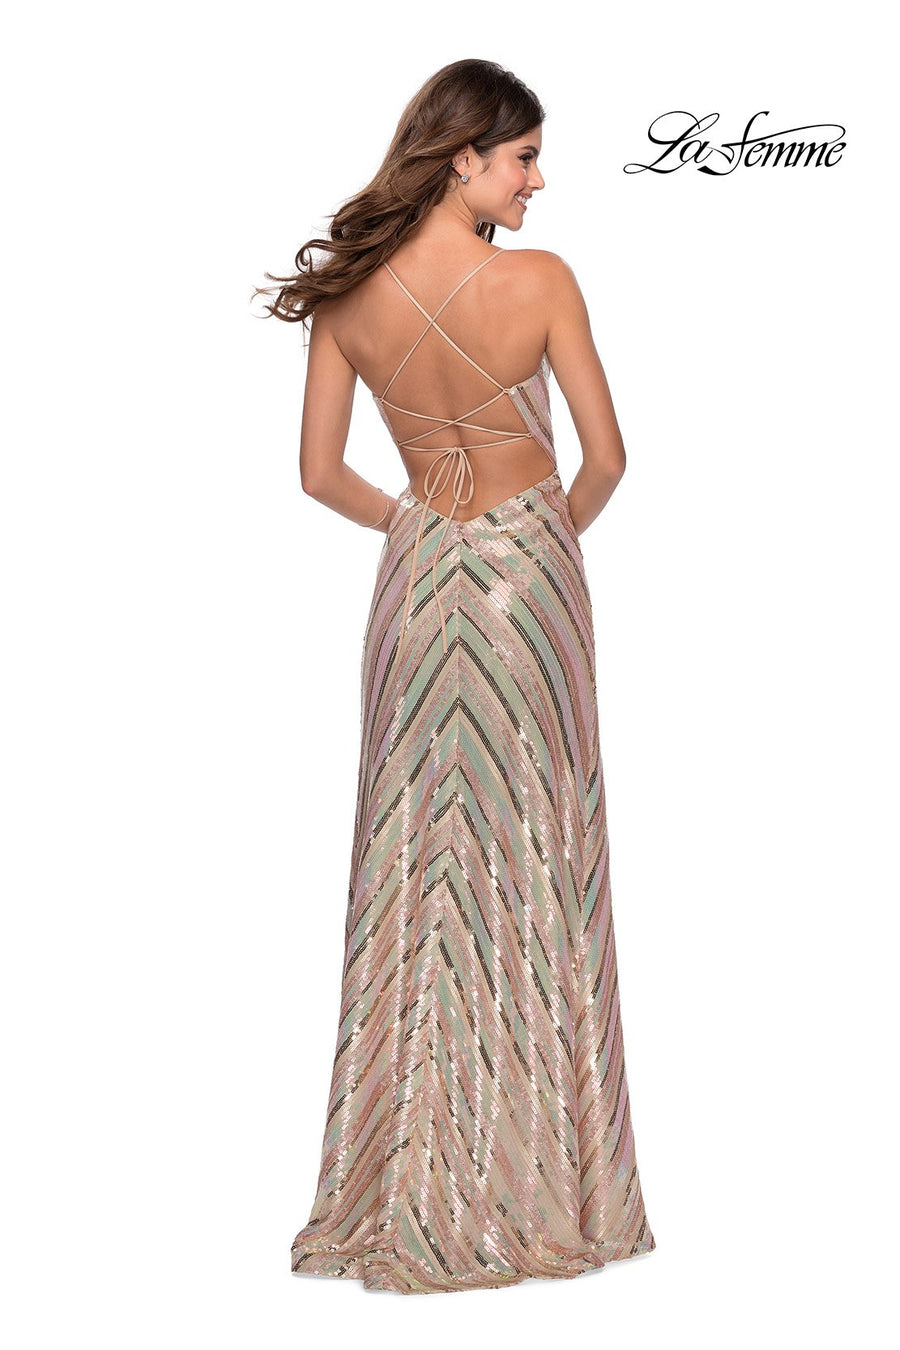 La Femme 28717 prom dress images.  La Femme 28717 is available in these colors: Nude Multi, White Multi.